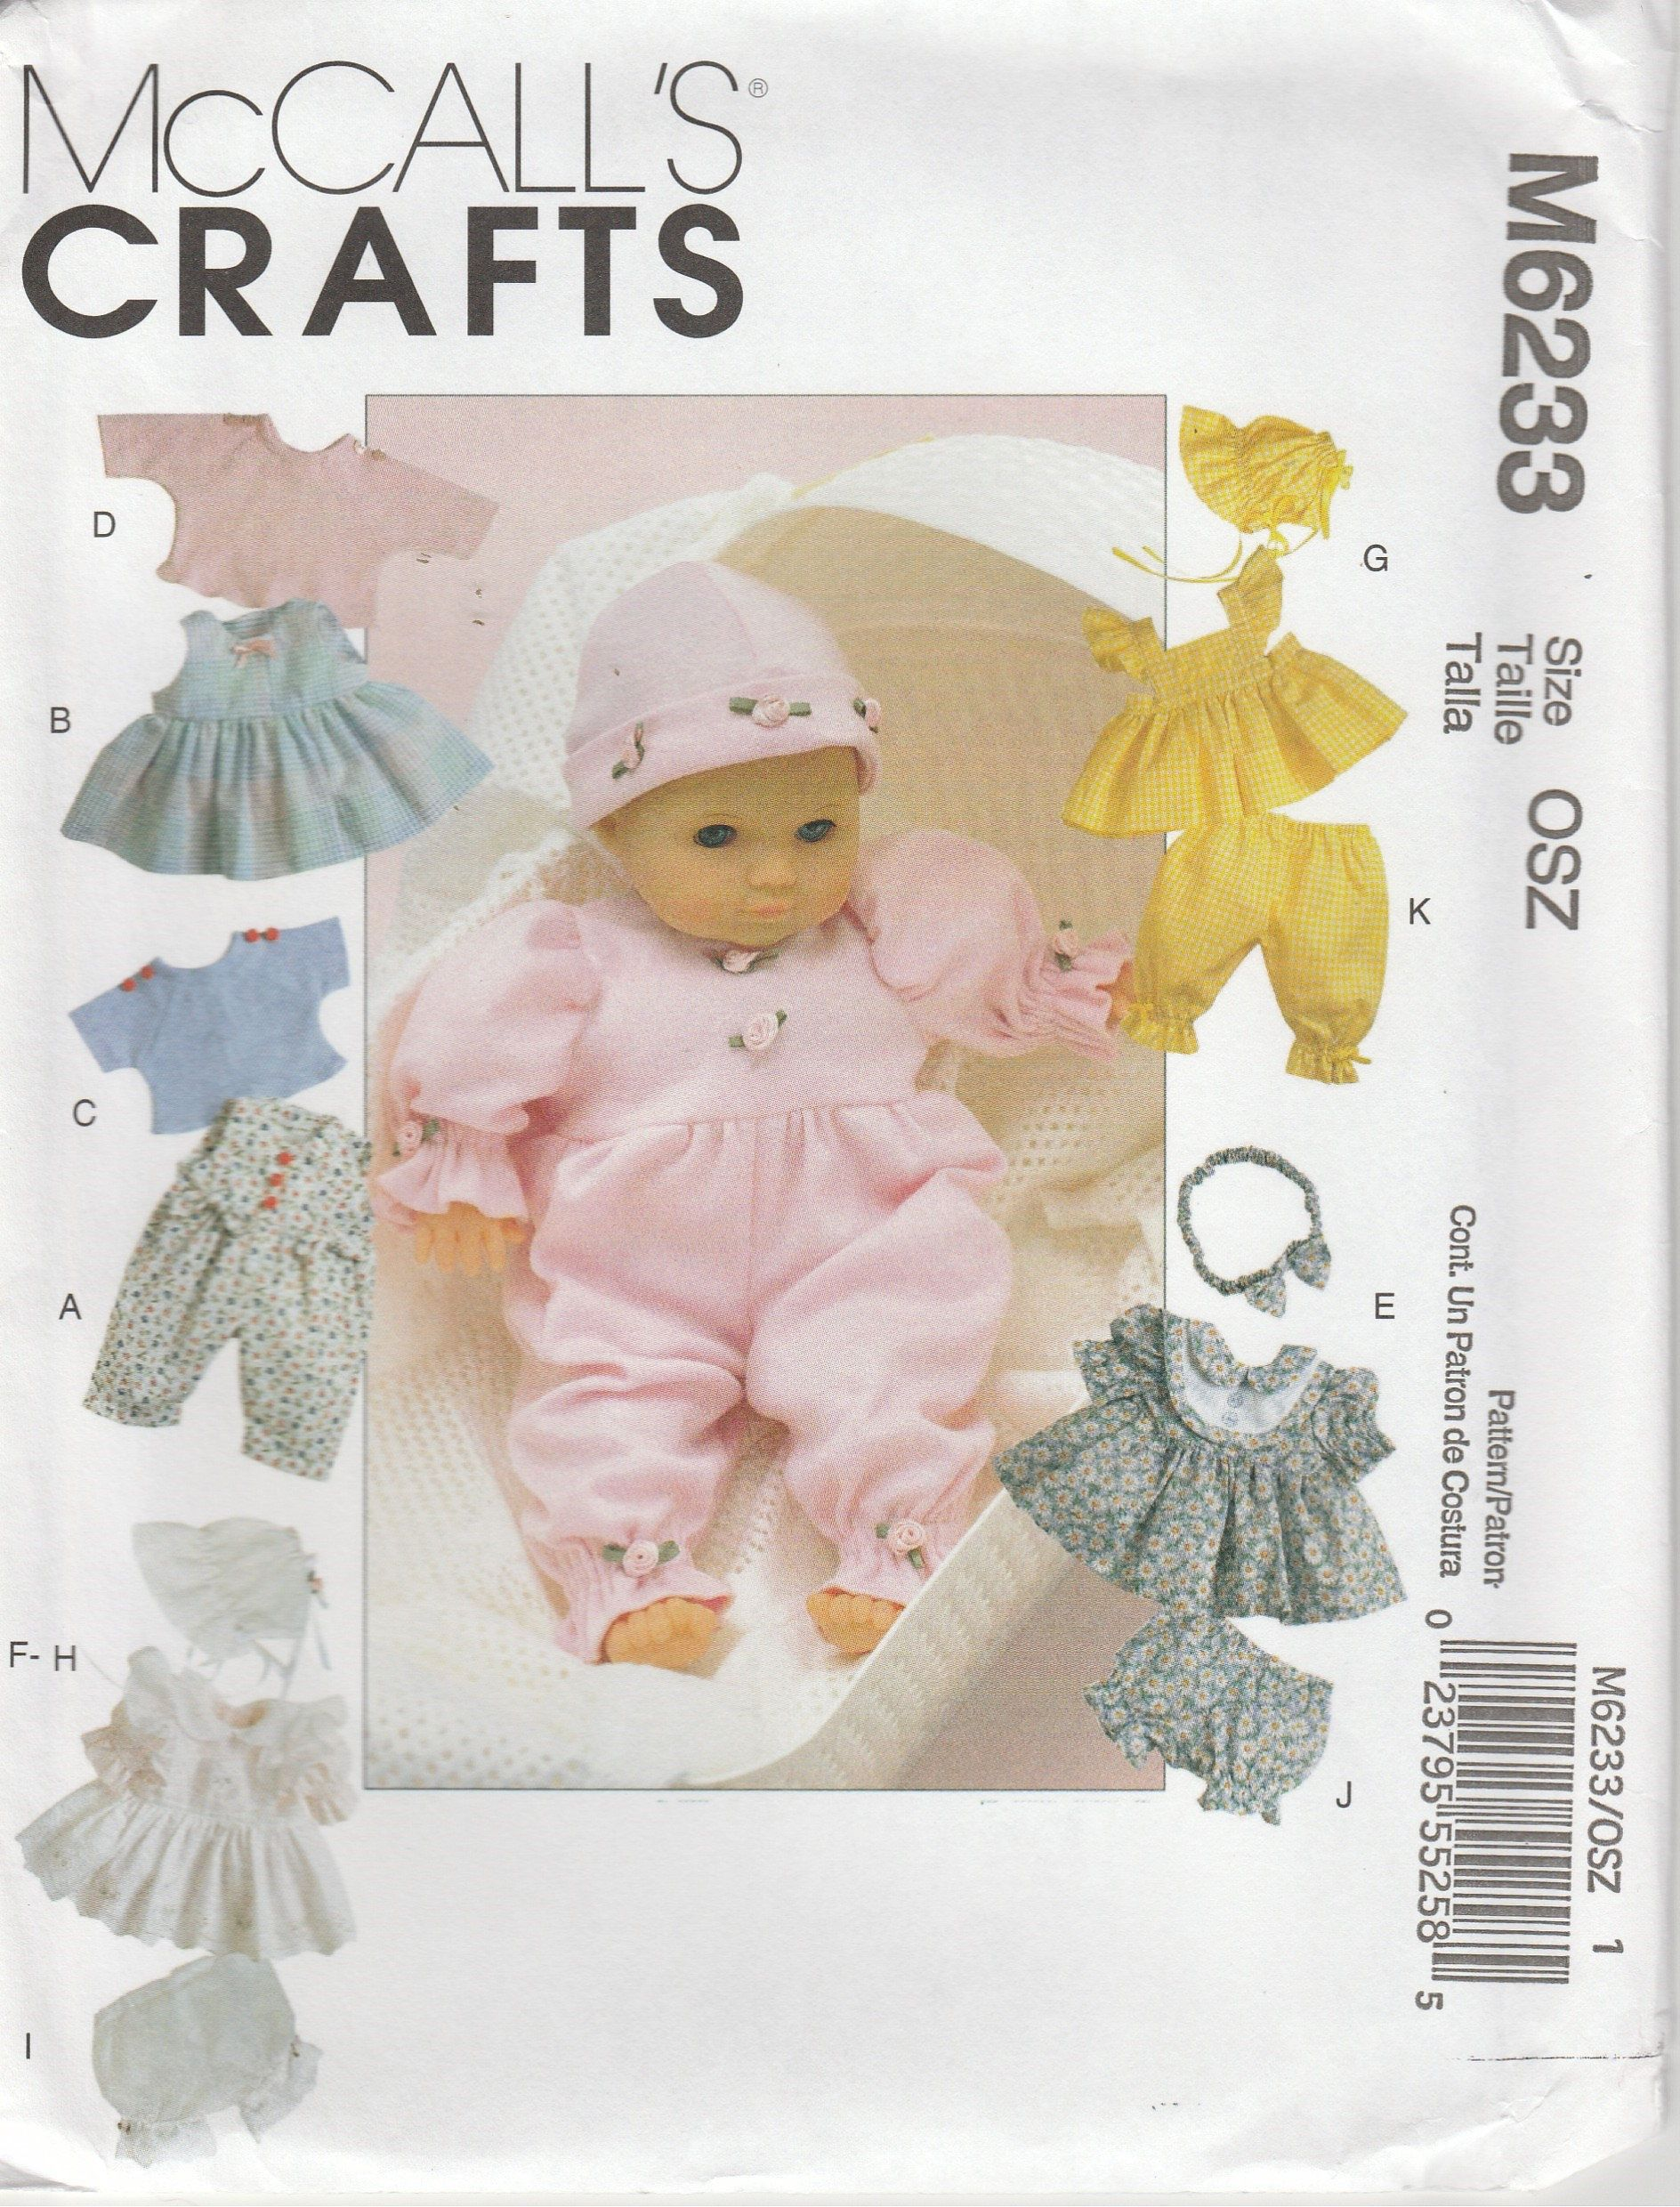 Doll Clothes Pattern Dress Romper Bonnet More Mccalls 6233 Size Sml Doll Size 8 Inch To 16 I Baby Doll Clothes Patterns Sewing Doll Clothes Baby Doll Clothes